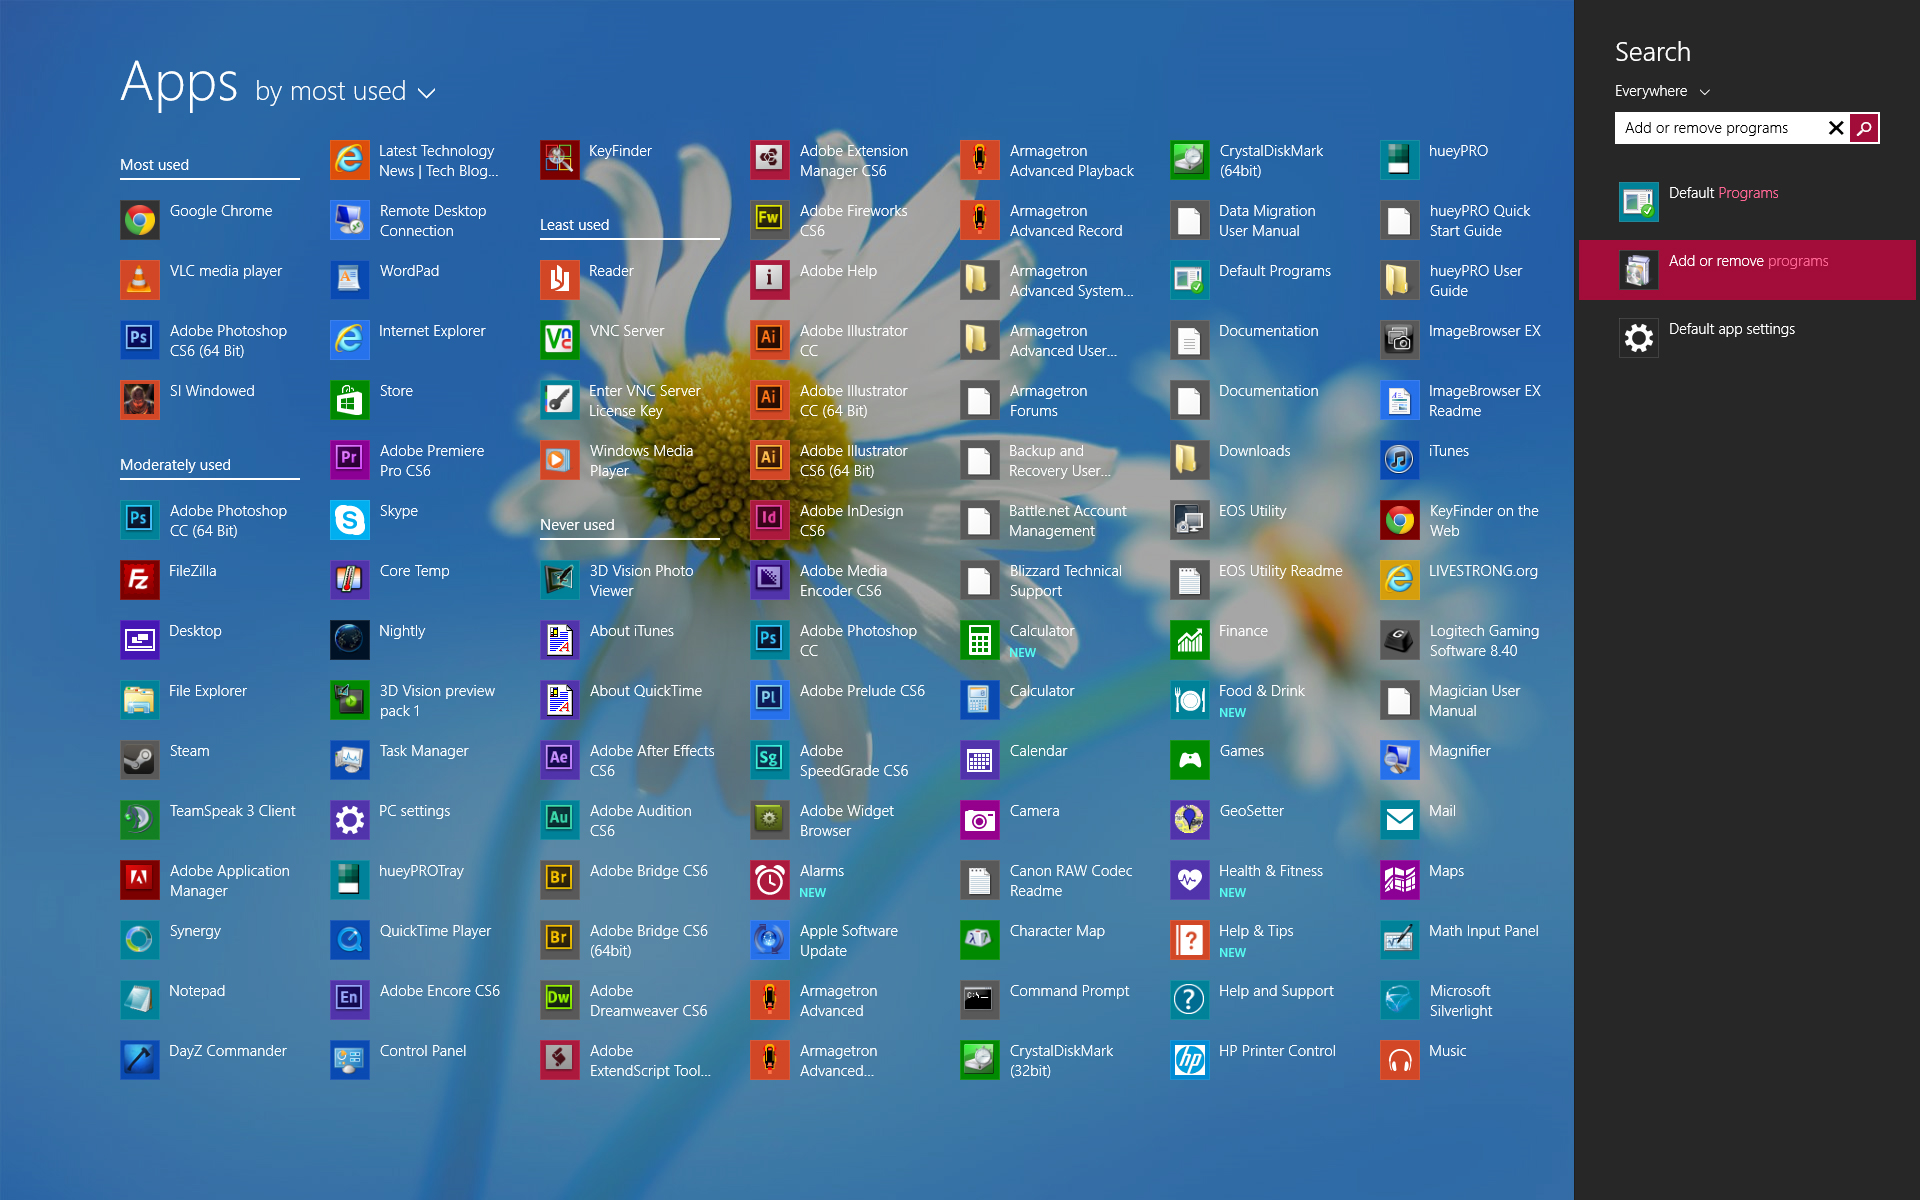 All Apps Screenshot